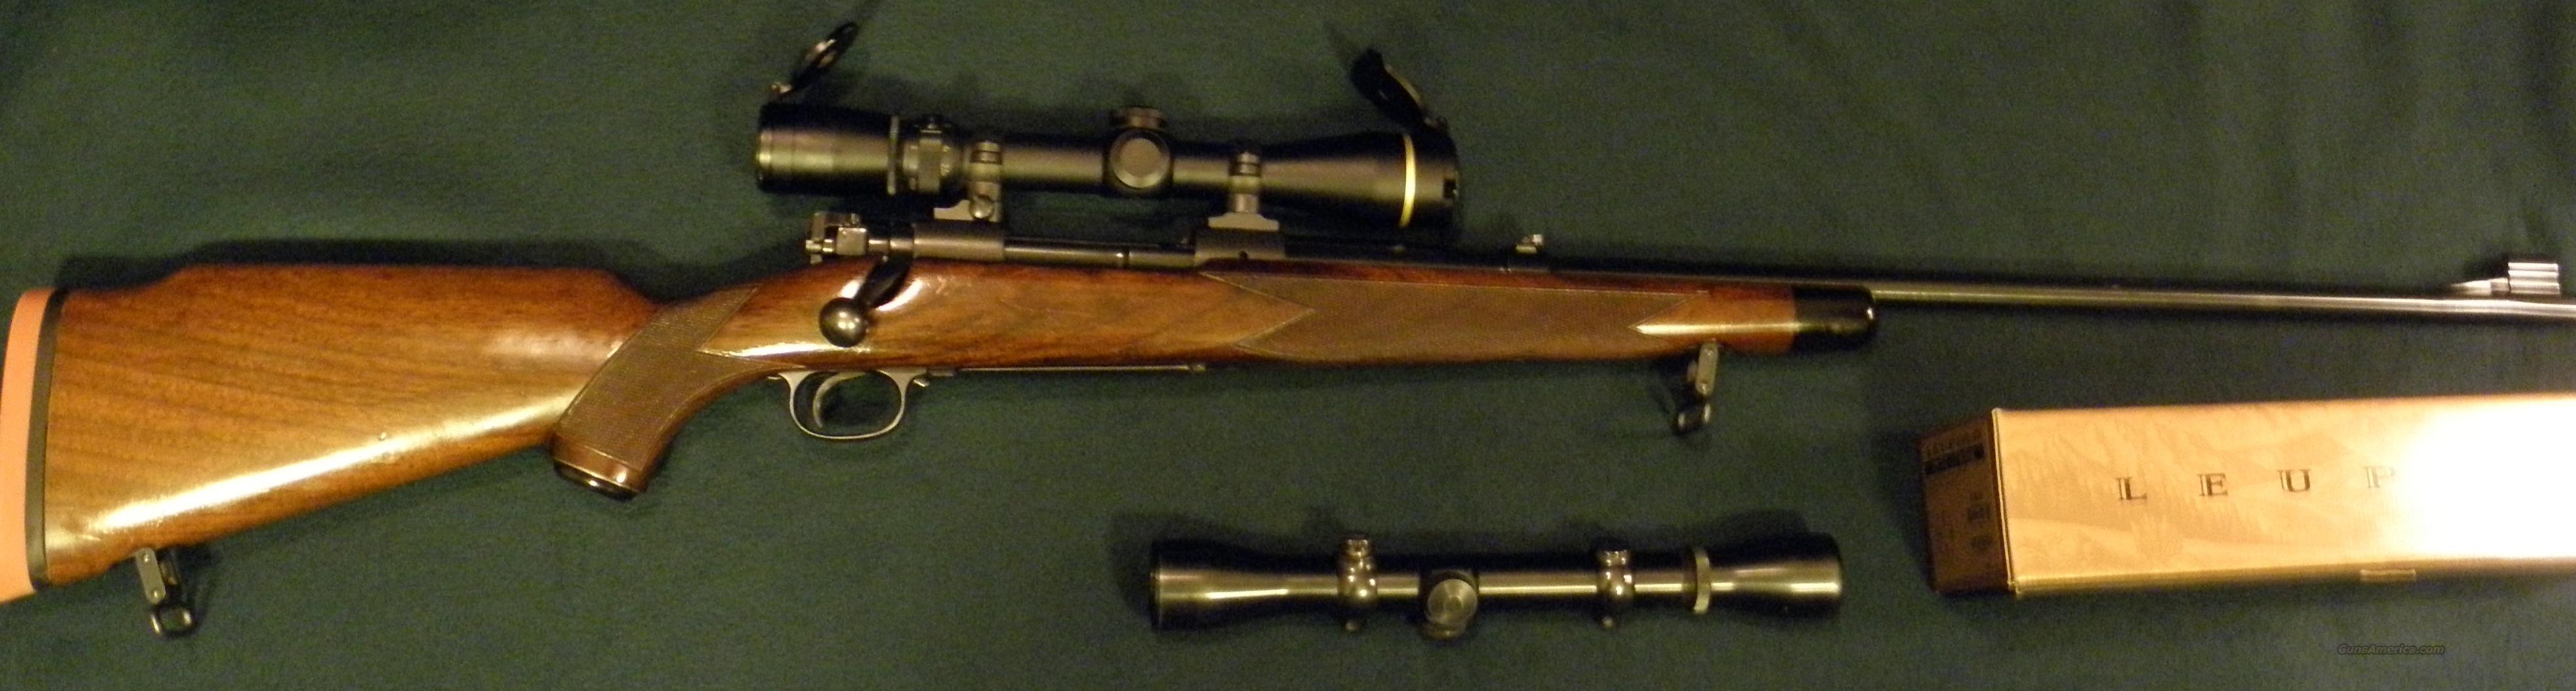 Pre 64 Winchester Model 70 Supergrade 300 H&H  Guns > Rifles > Winchester Rifles - Modern Bolt/Auto/Single > Model 70 > Pre-64